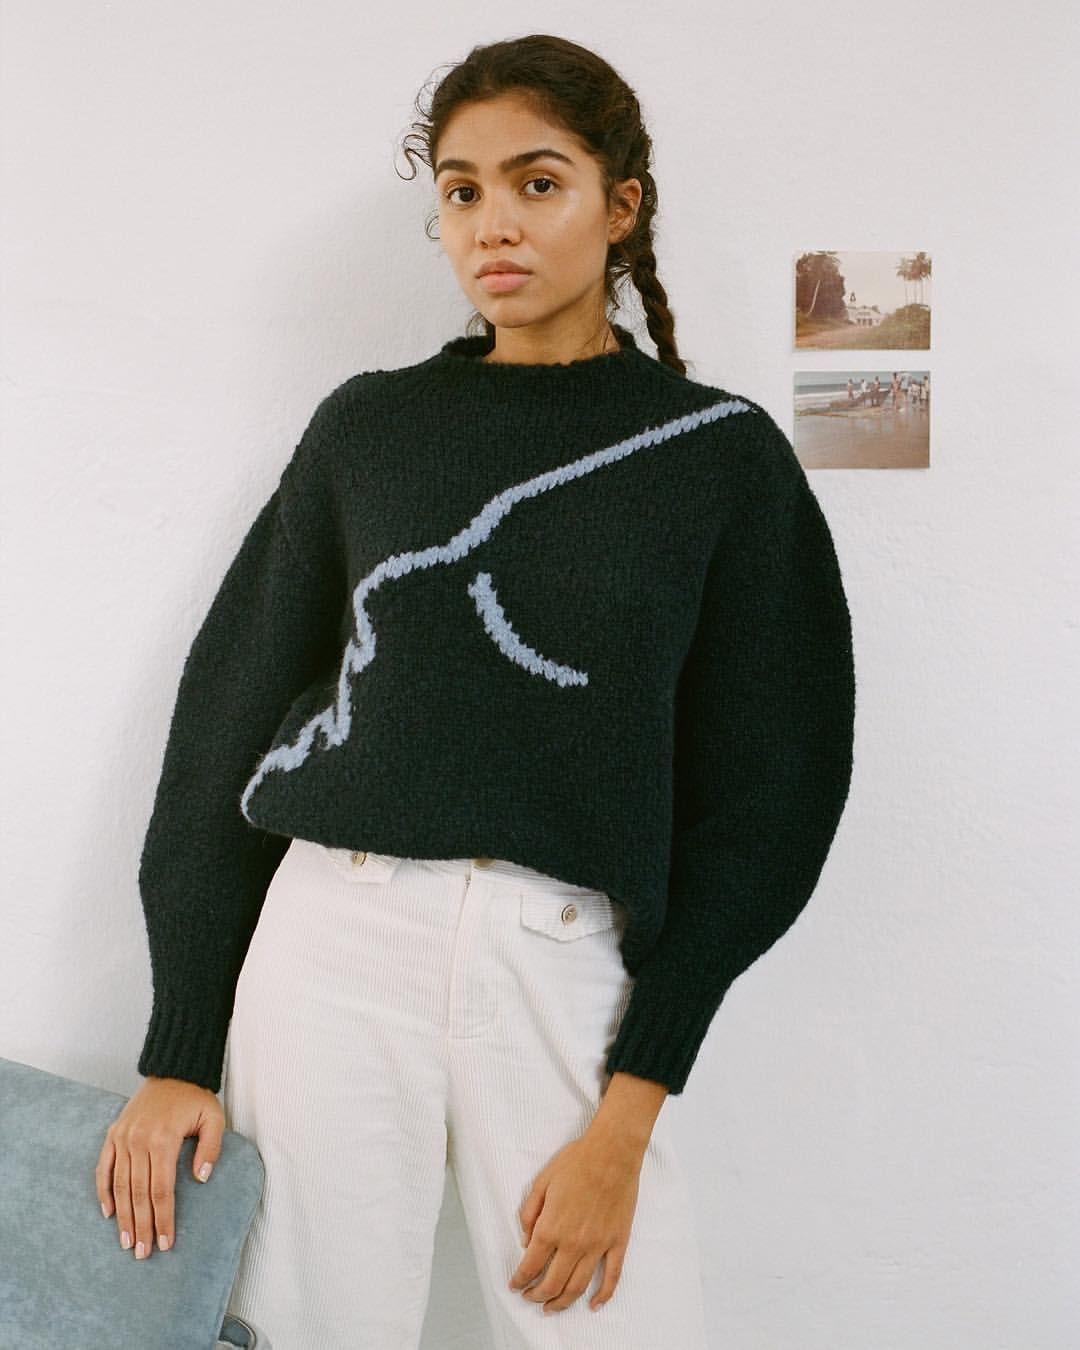 Pin By Yummy Light On Sweater Album In 2019 Pinterest Love